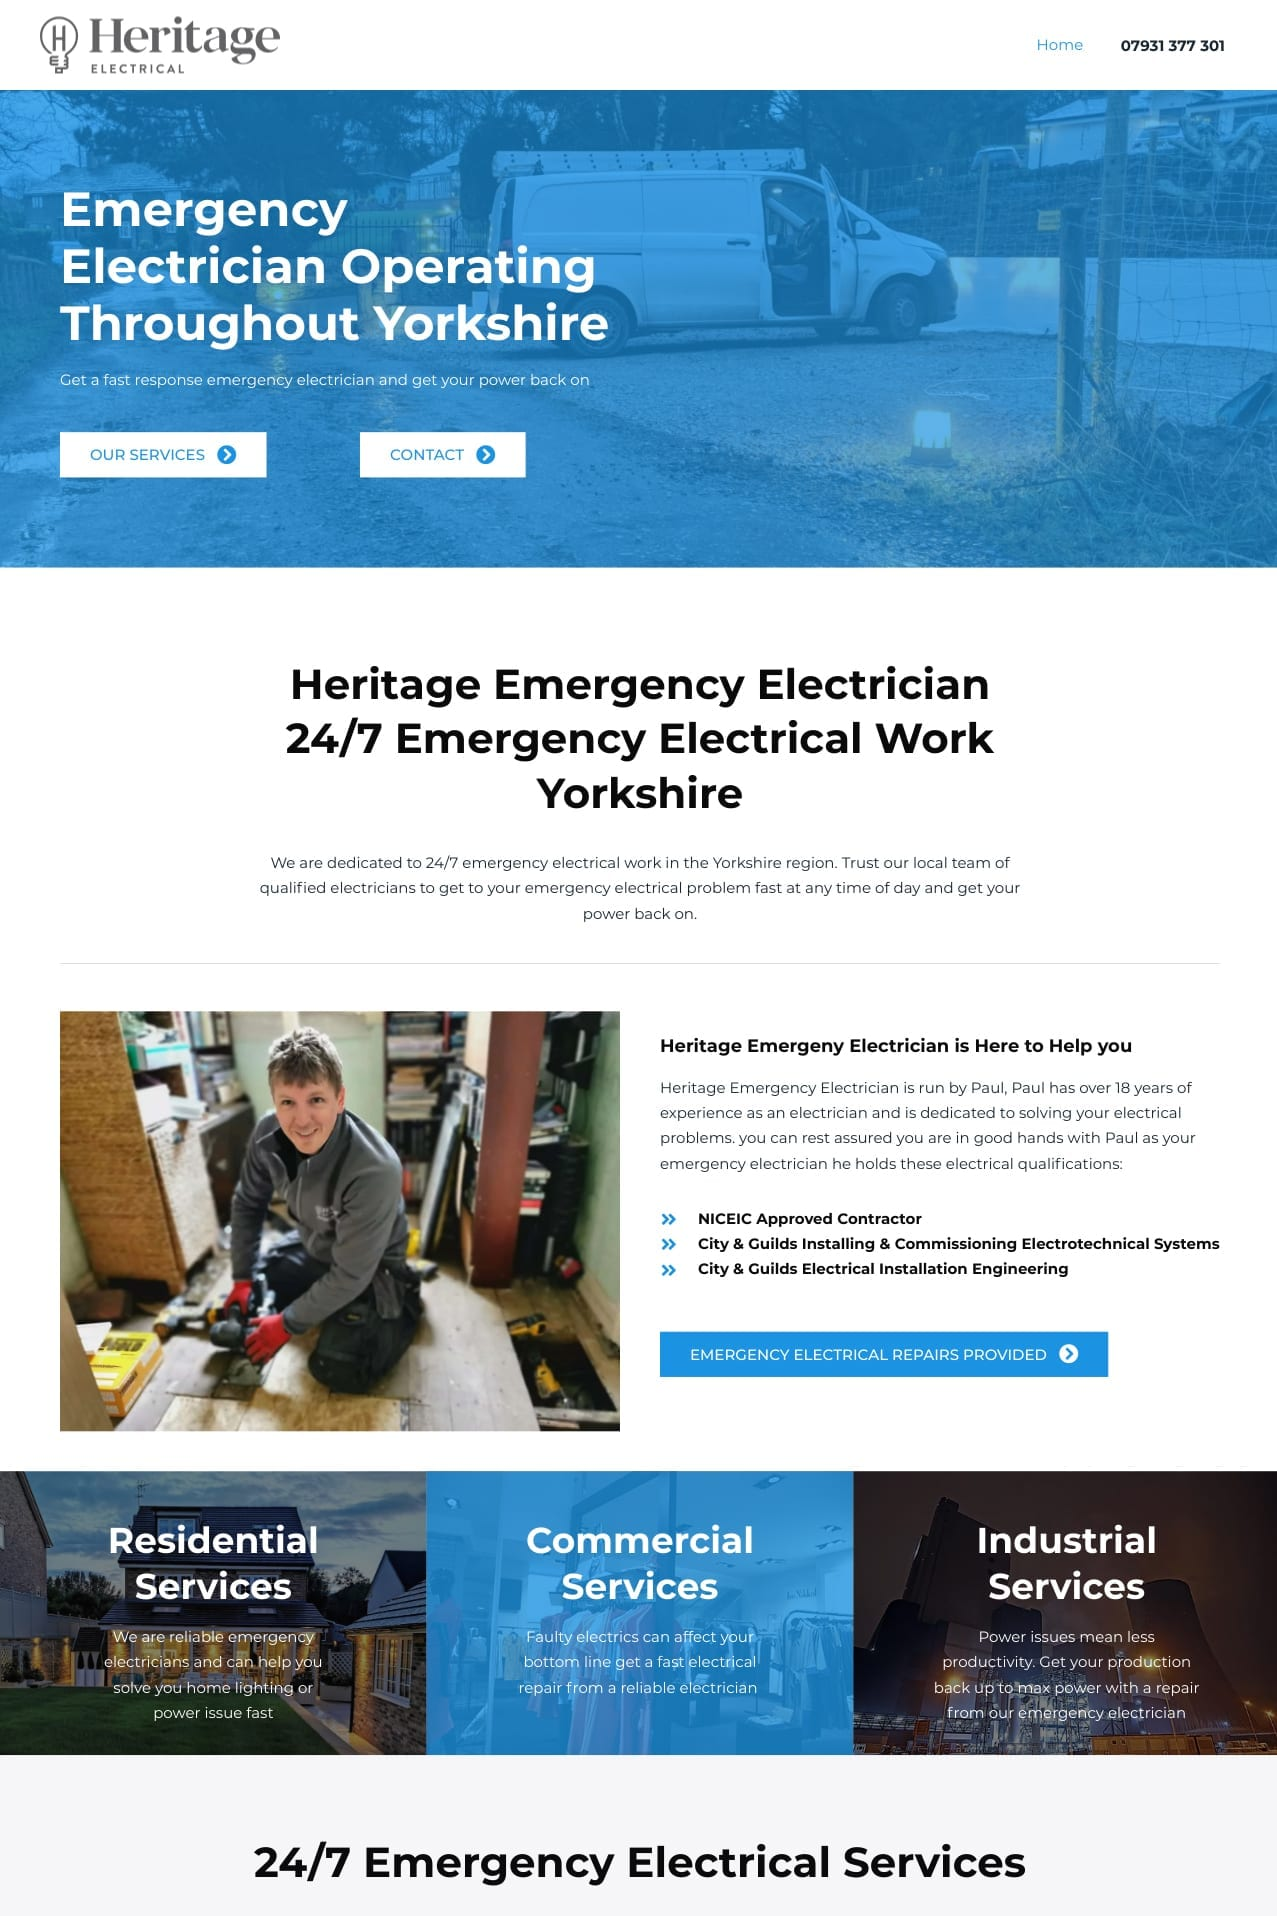 Heritage Emergency Electrician website holmfirth Screen Shot 4x6